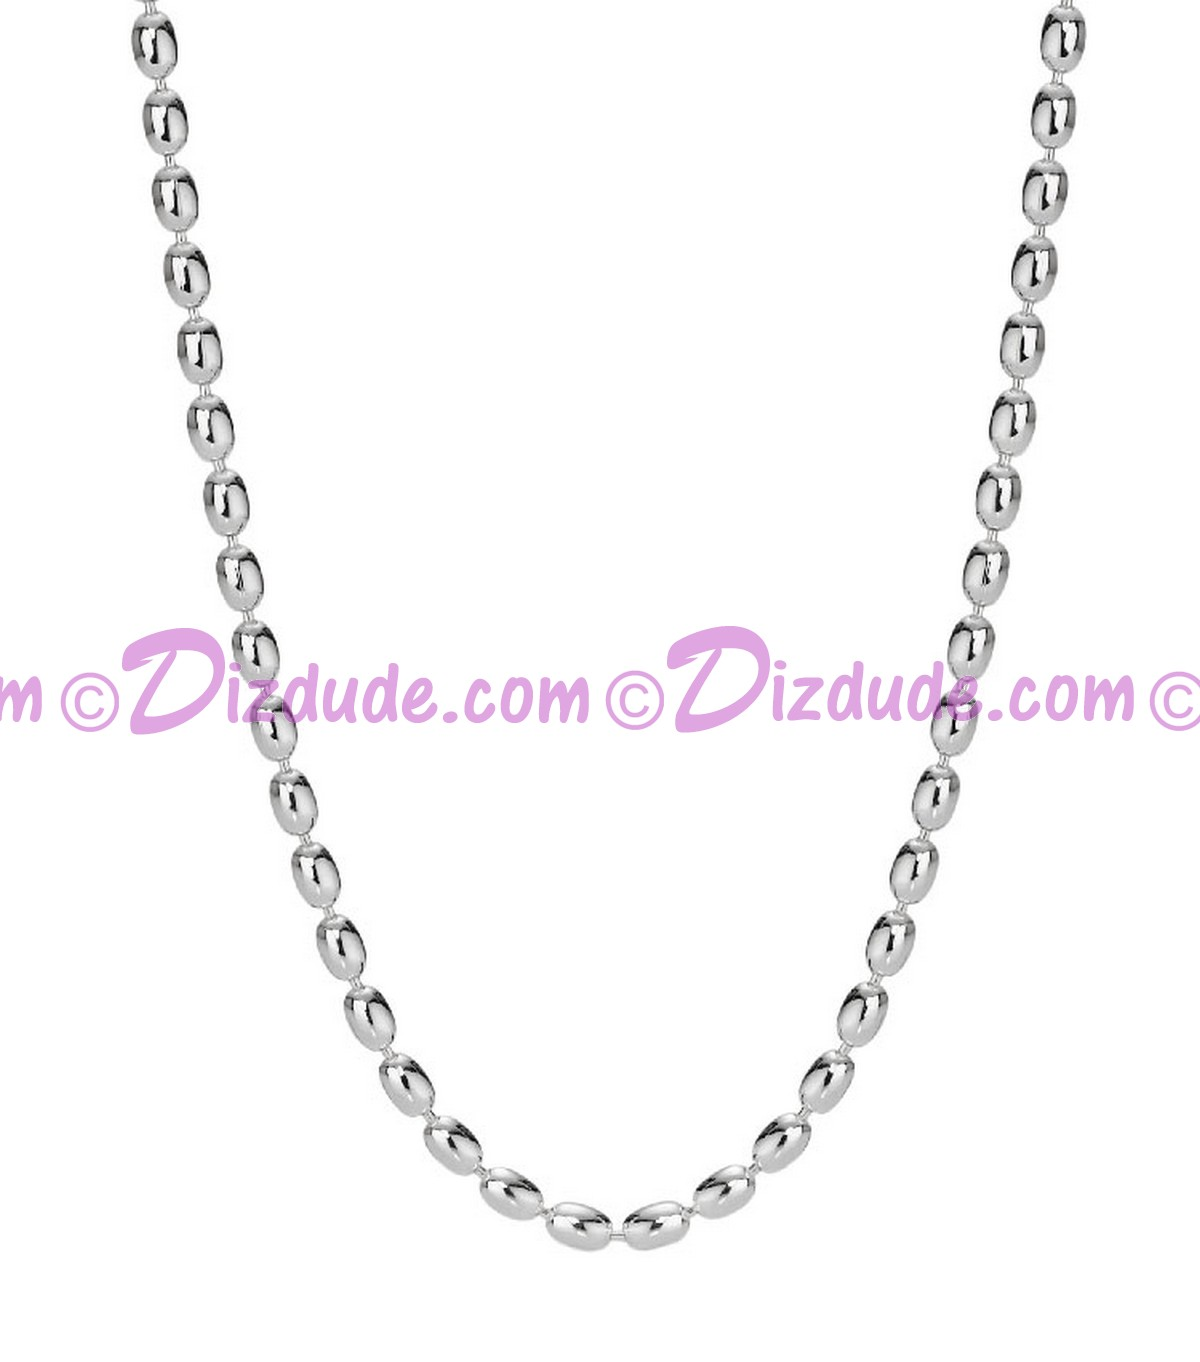 Disney Pandora Sterling Silver Wheat Style Chain Necklace